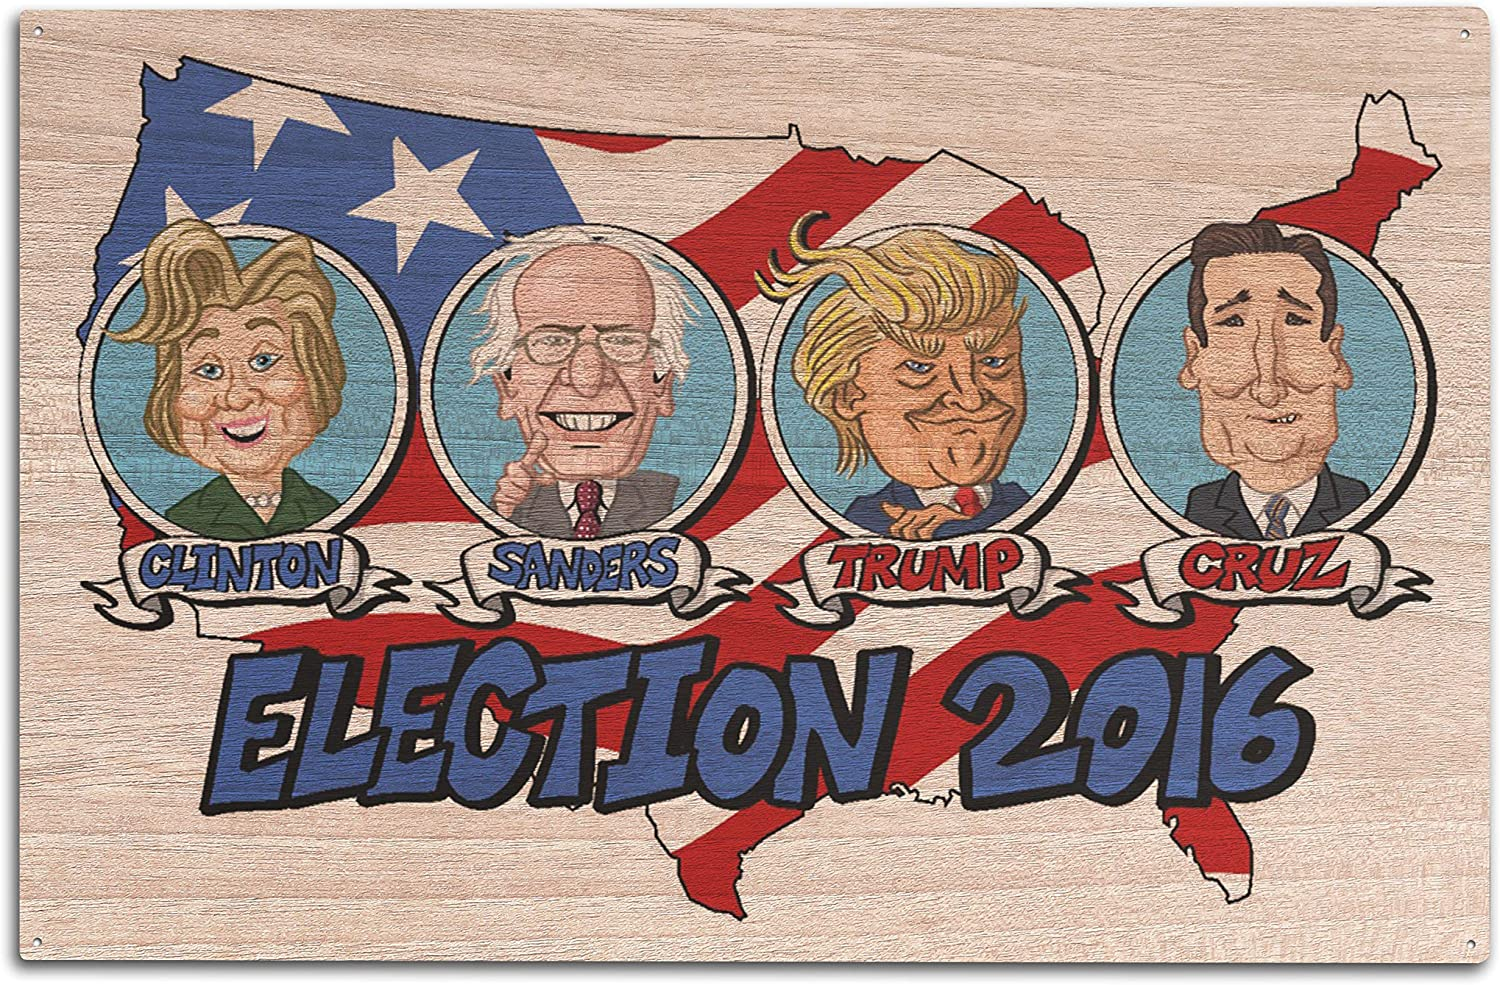 10x15 Wood Wall Sign, Wall Decor Ready to Hang Candidates Lantern Press Presidential Election 2016